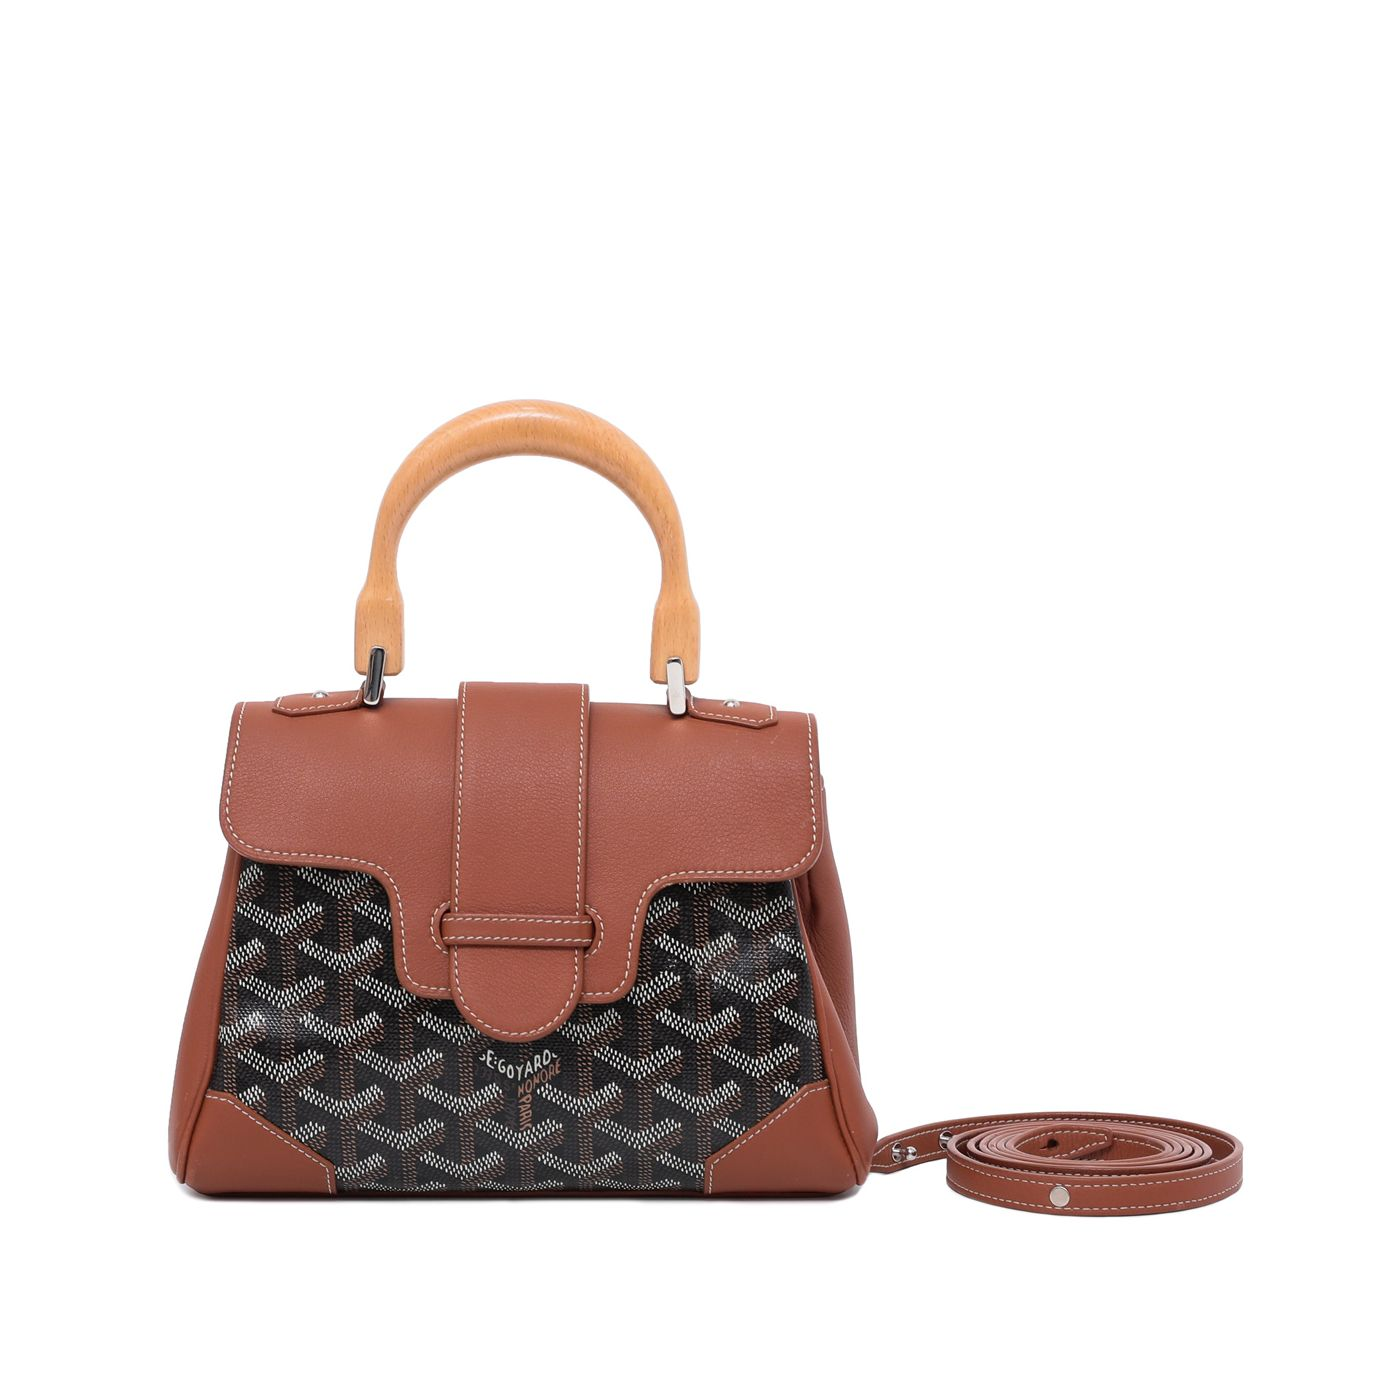 Goyard Brown Saigon Tote Bag Mini